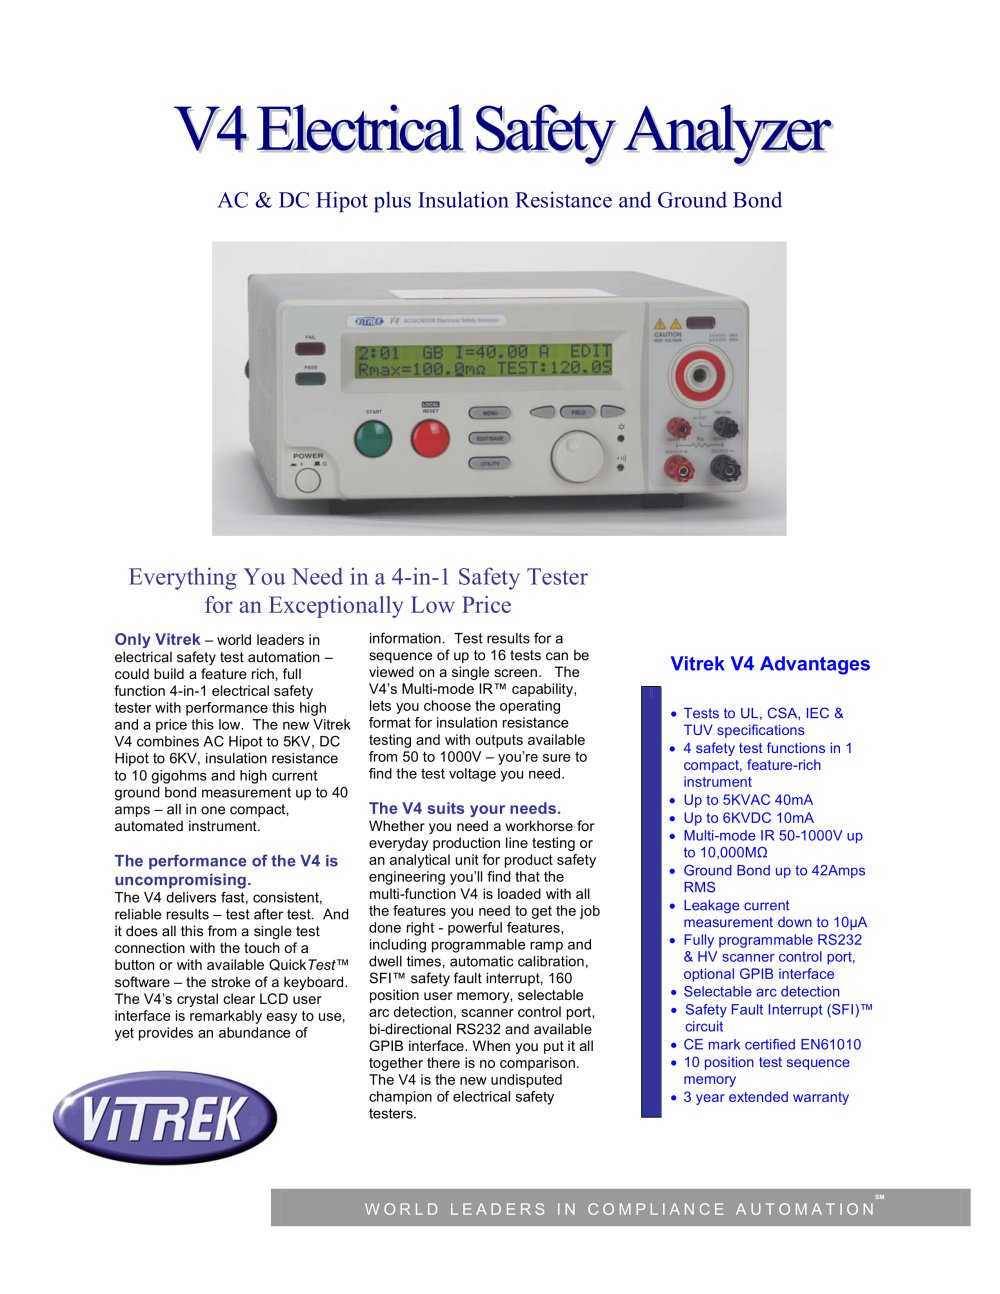 Vitrek Hipot Electrical Safety Analyzer Pdf Catalogue Everything How To Test Circuits Like A Pro Part 1 2 Pages